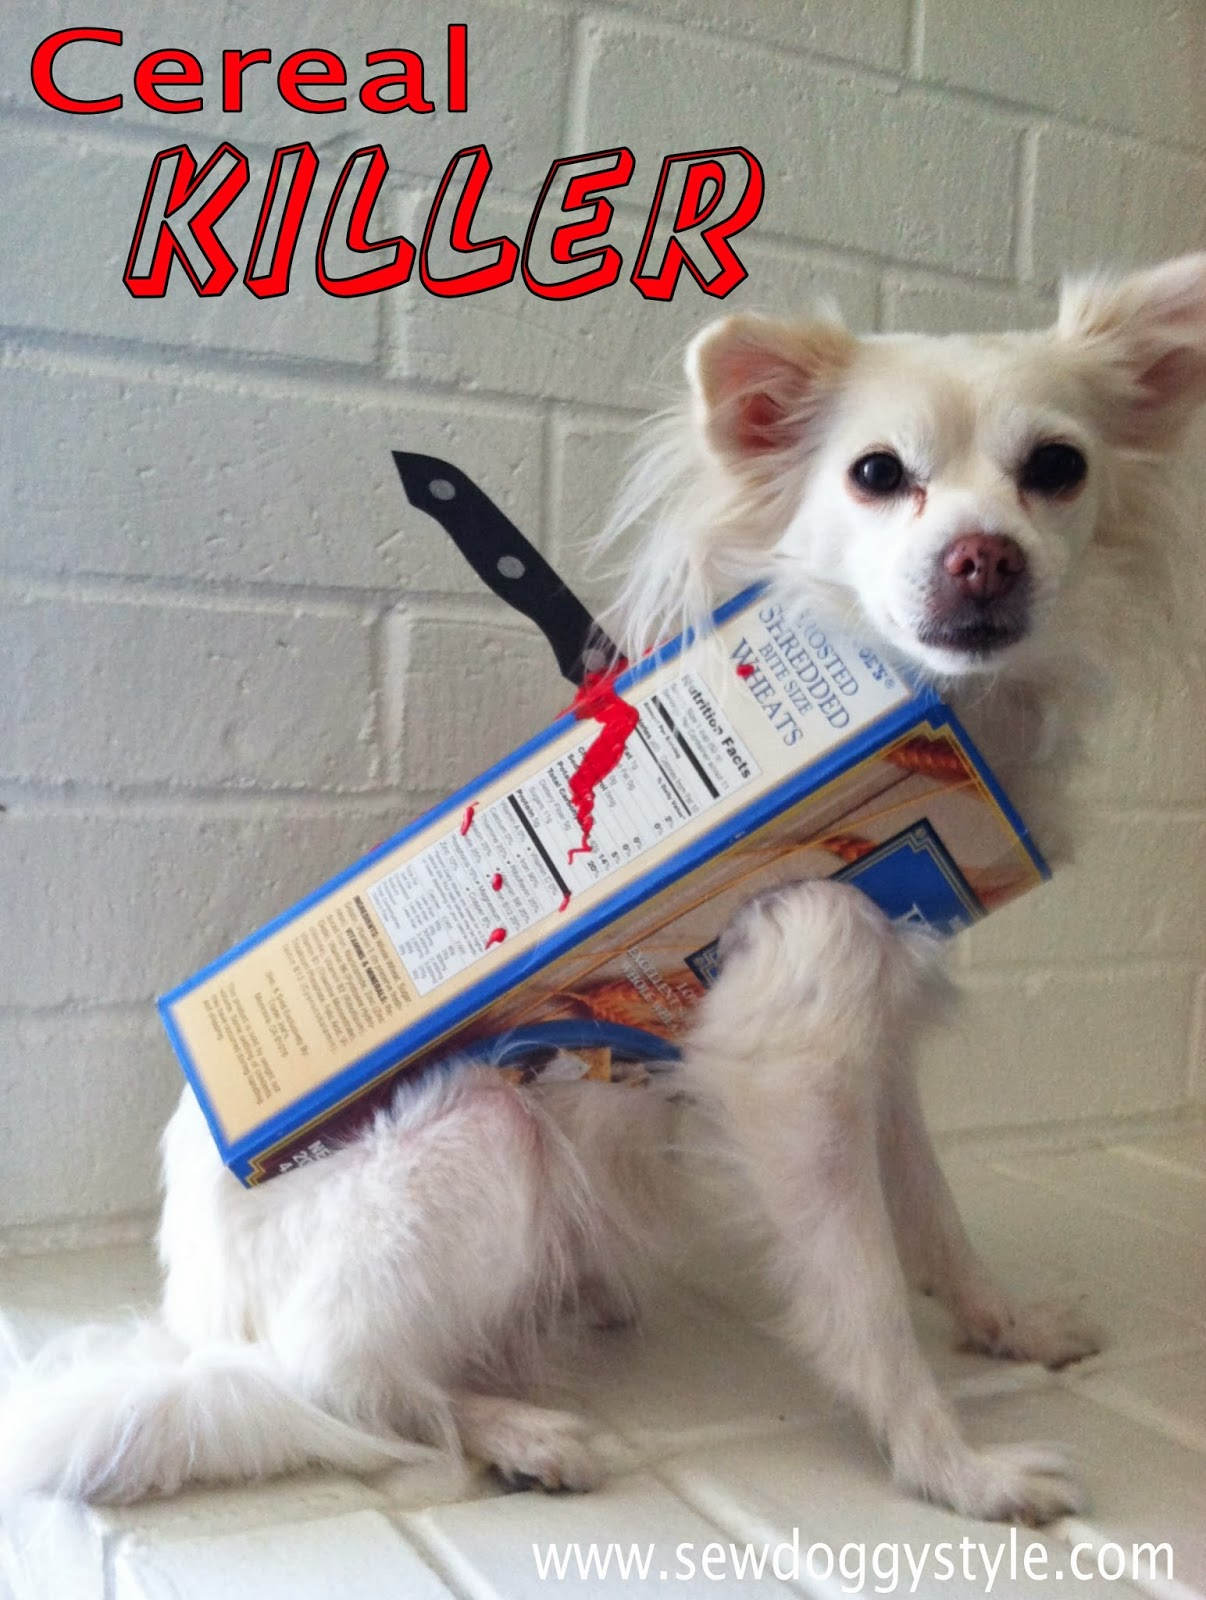 Sew doggystyle last minute diy halloween costume cereal killer last minute diy halloween costume cereal killer ccuart Gallery